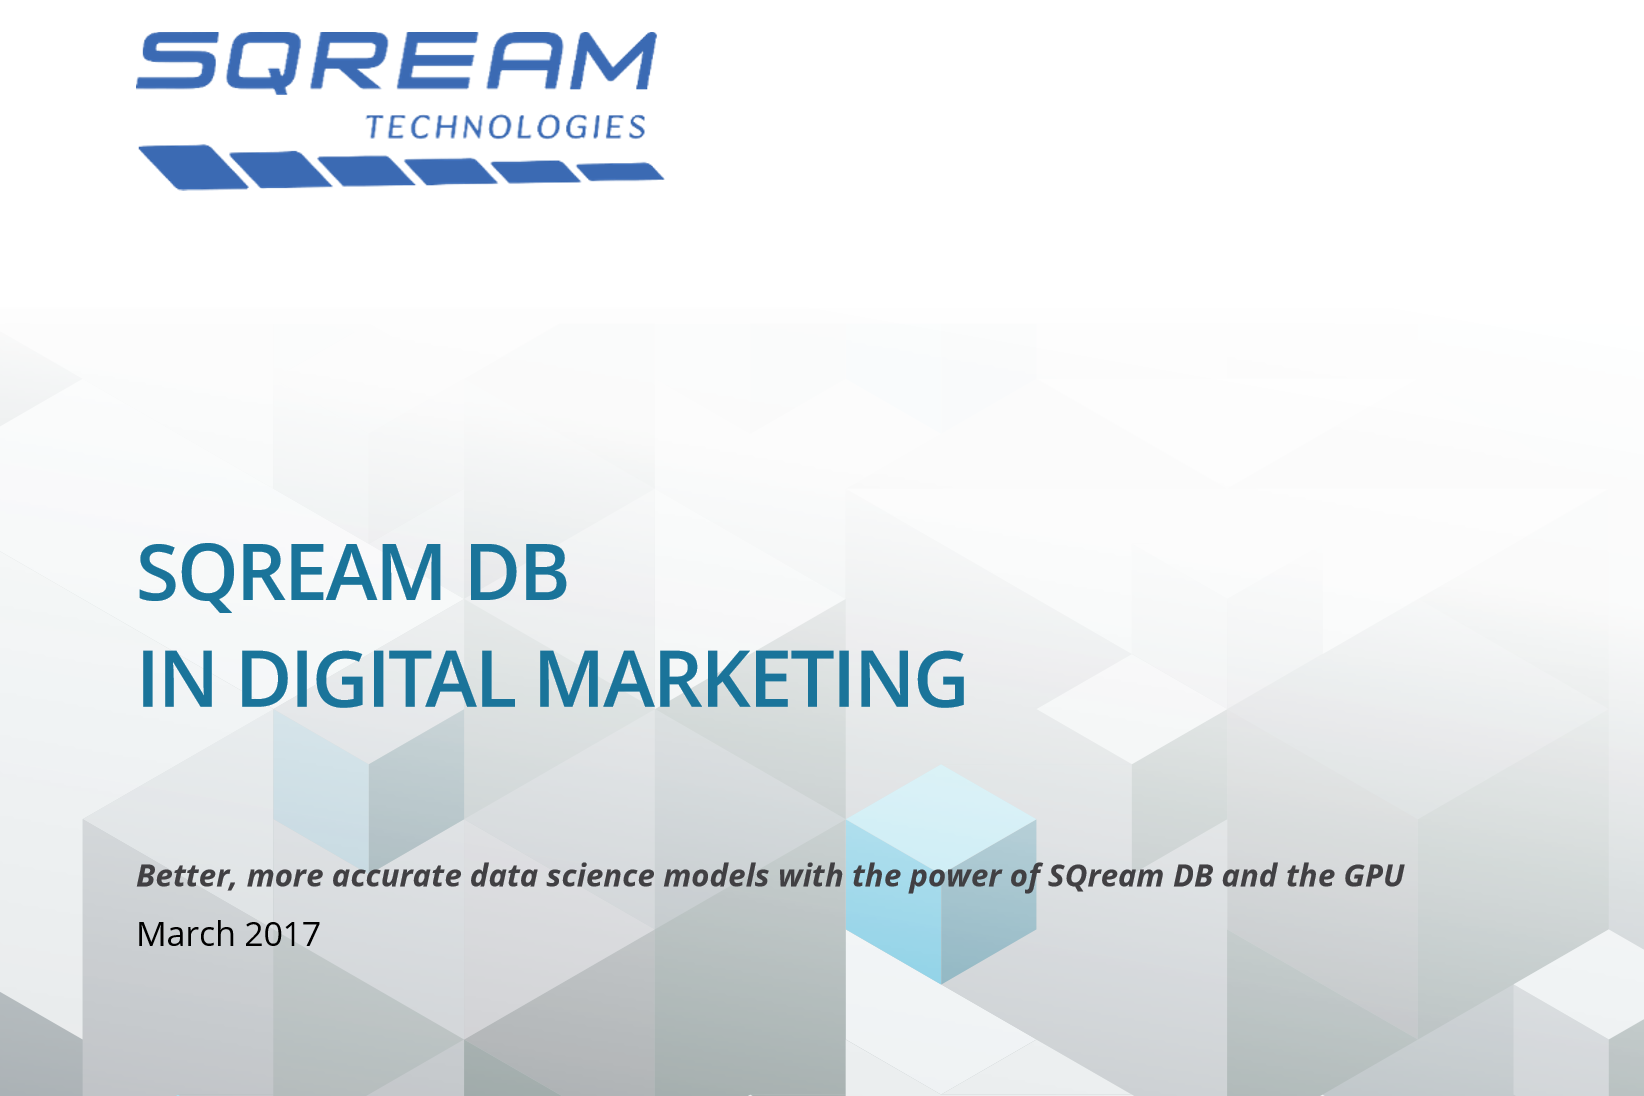 sqream db ad-tech whitepaper.png